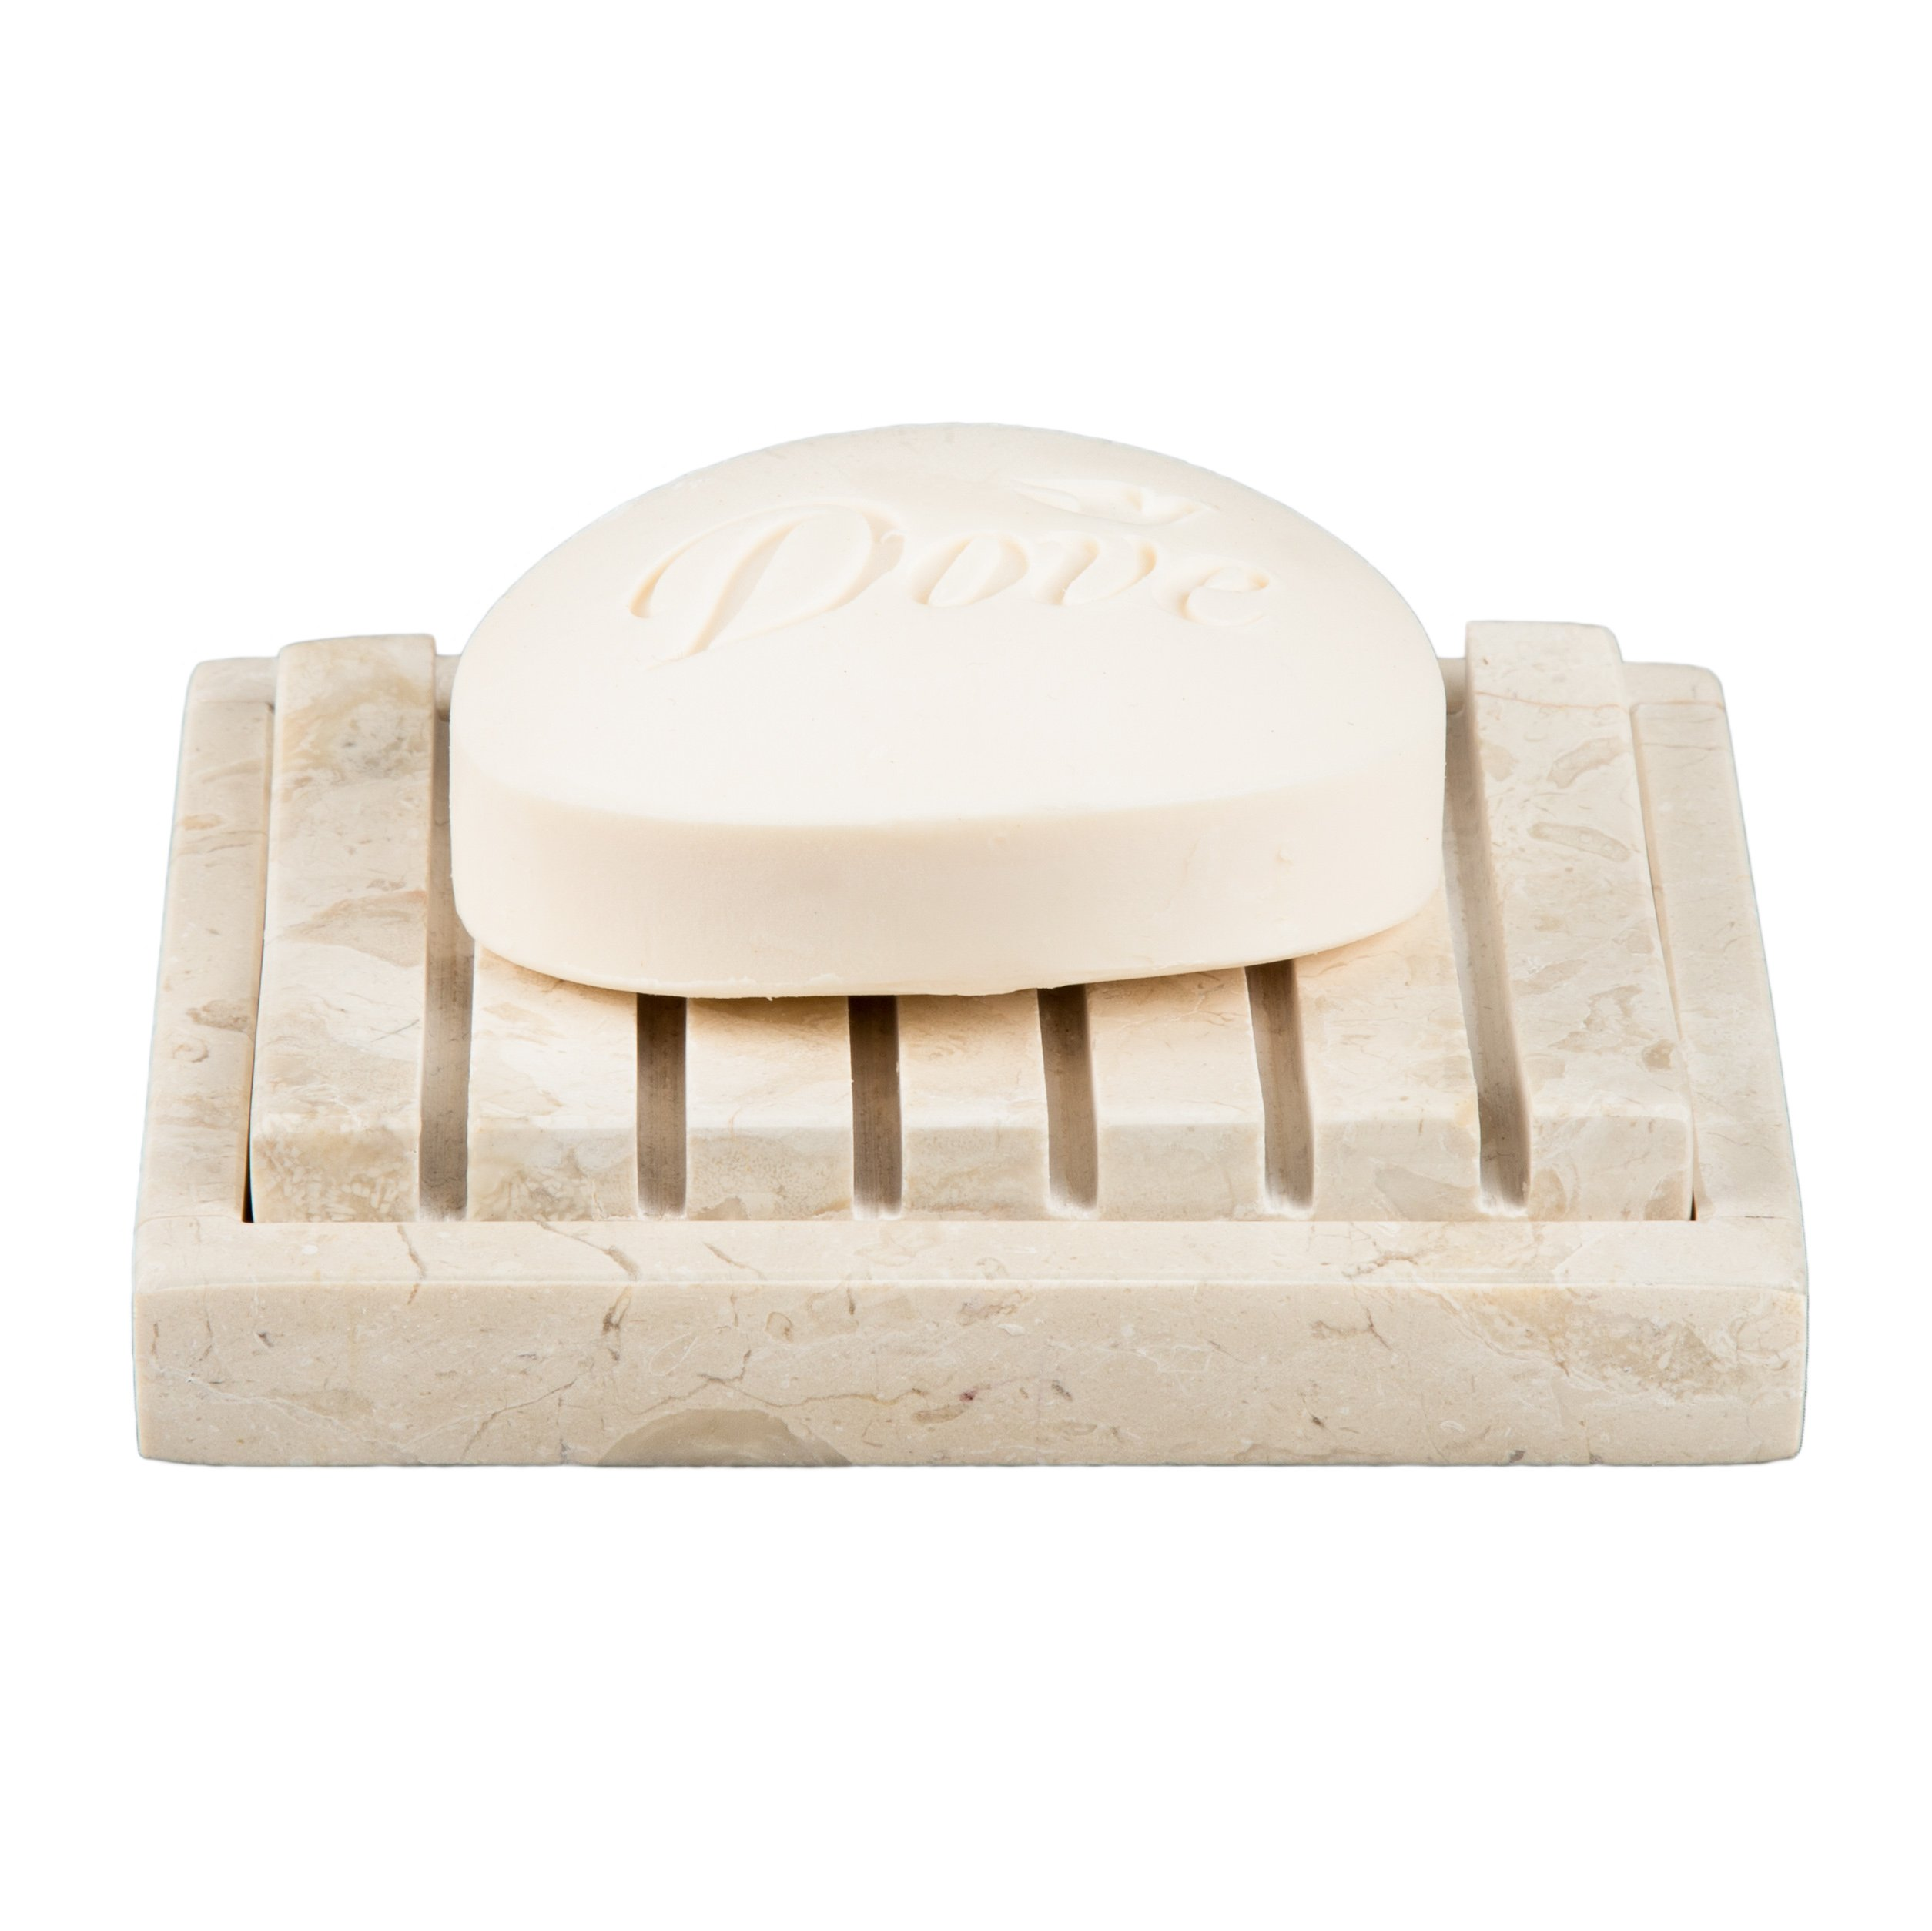 Creative Home Natural Champagne Marble Stone SPA Collection 2 Piece Bar Soap Dish, Soap Tray by Creative Home (Image #2)